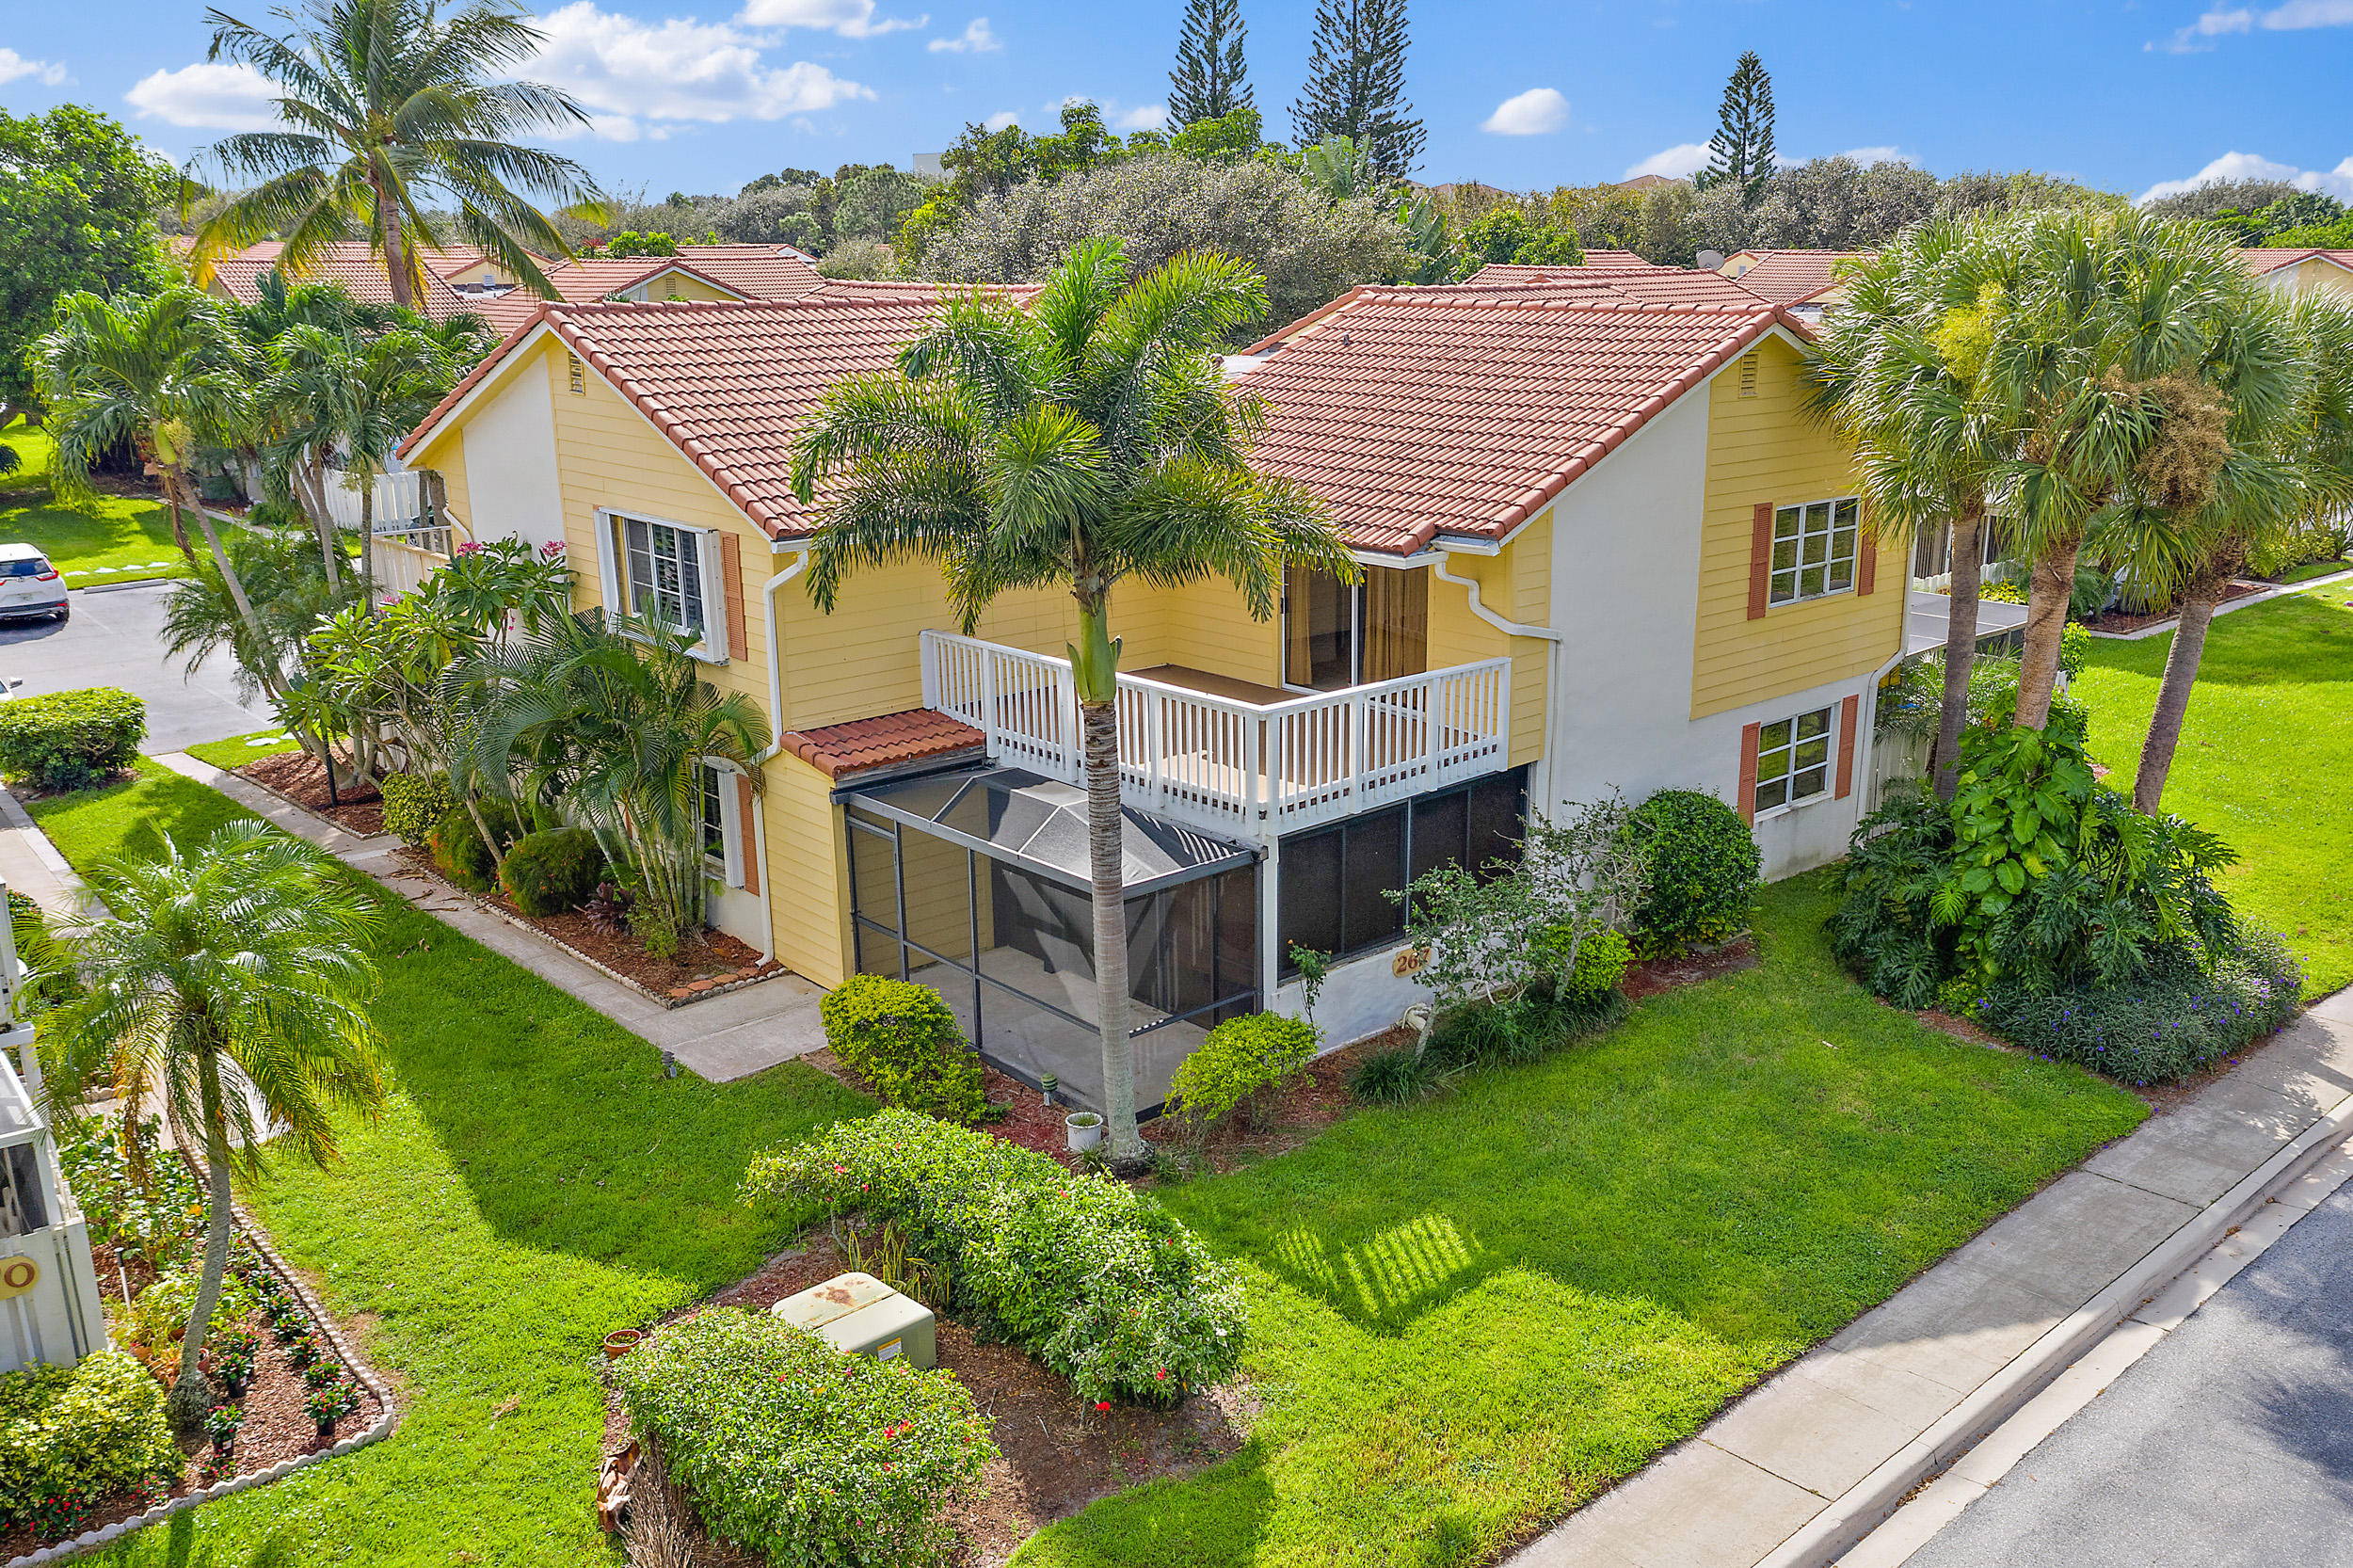 267 Seabreeze Circle - Jupiter, Florida